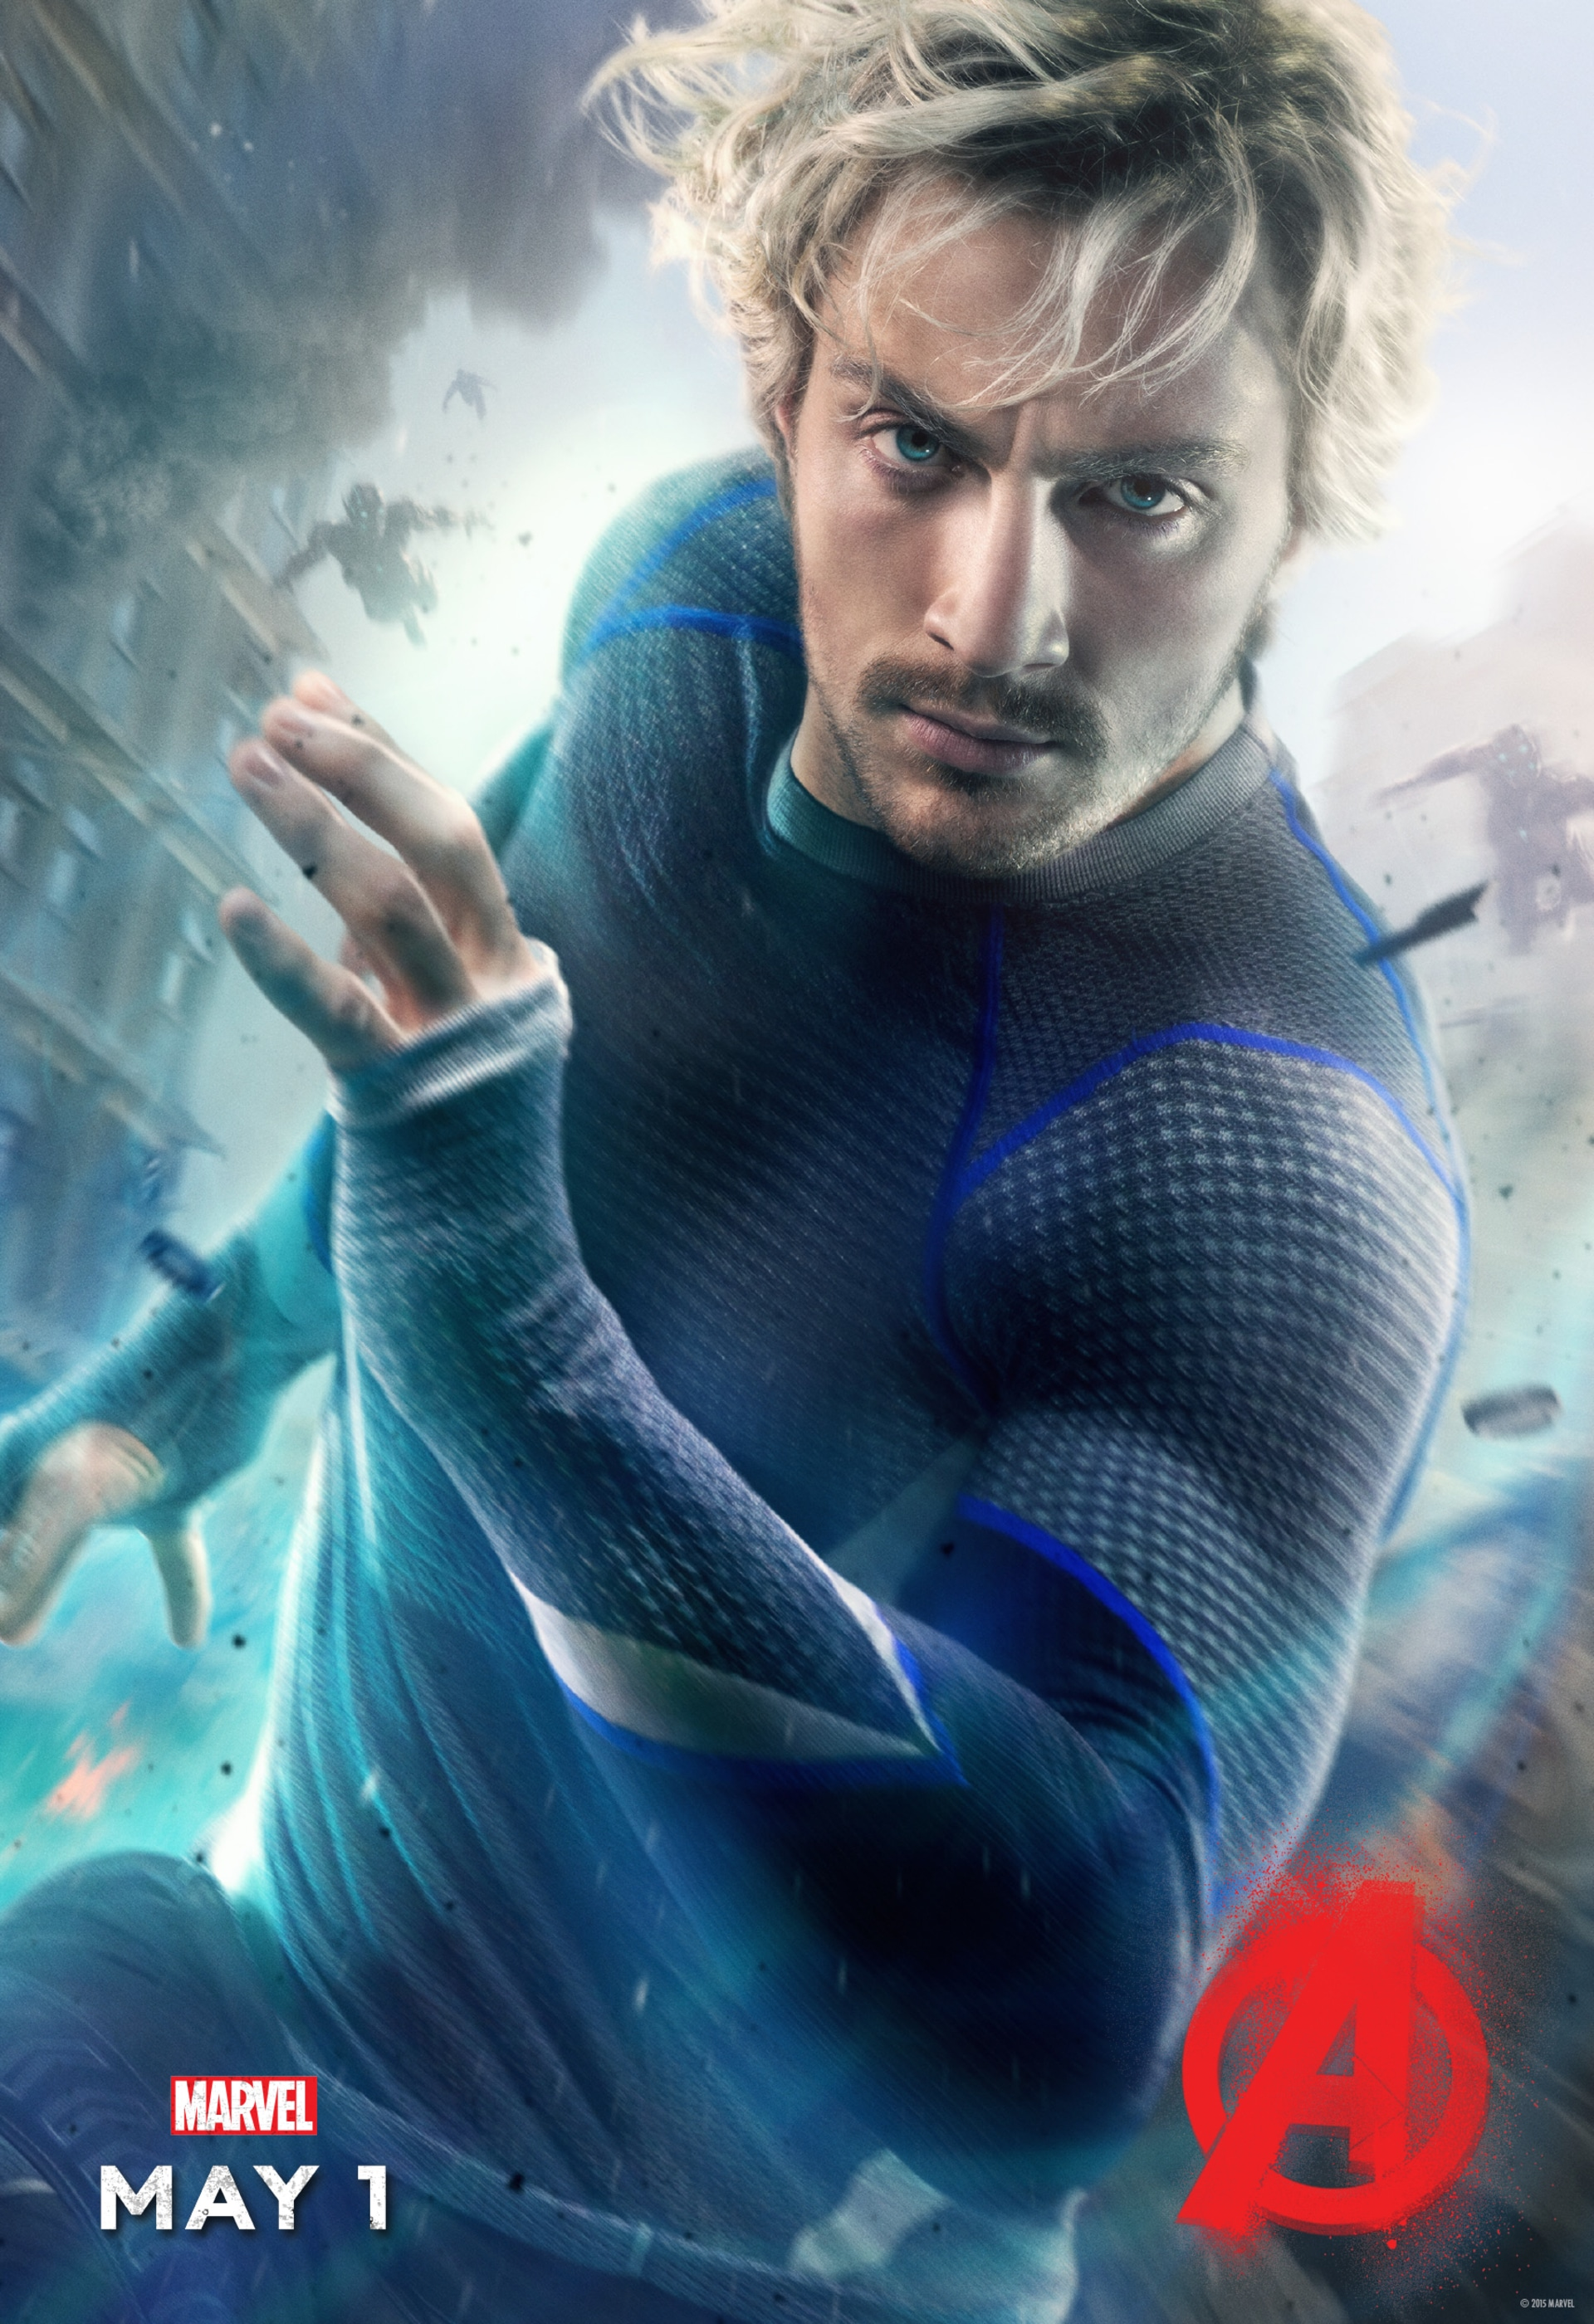 Quicksilver coloring pages - Quicksilver Coloring Pages We Know Quicksilver Is Fast But How Did They Create That Onscreen